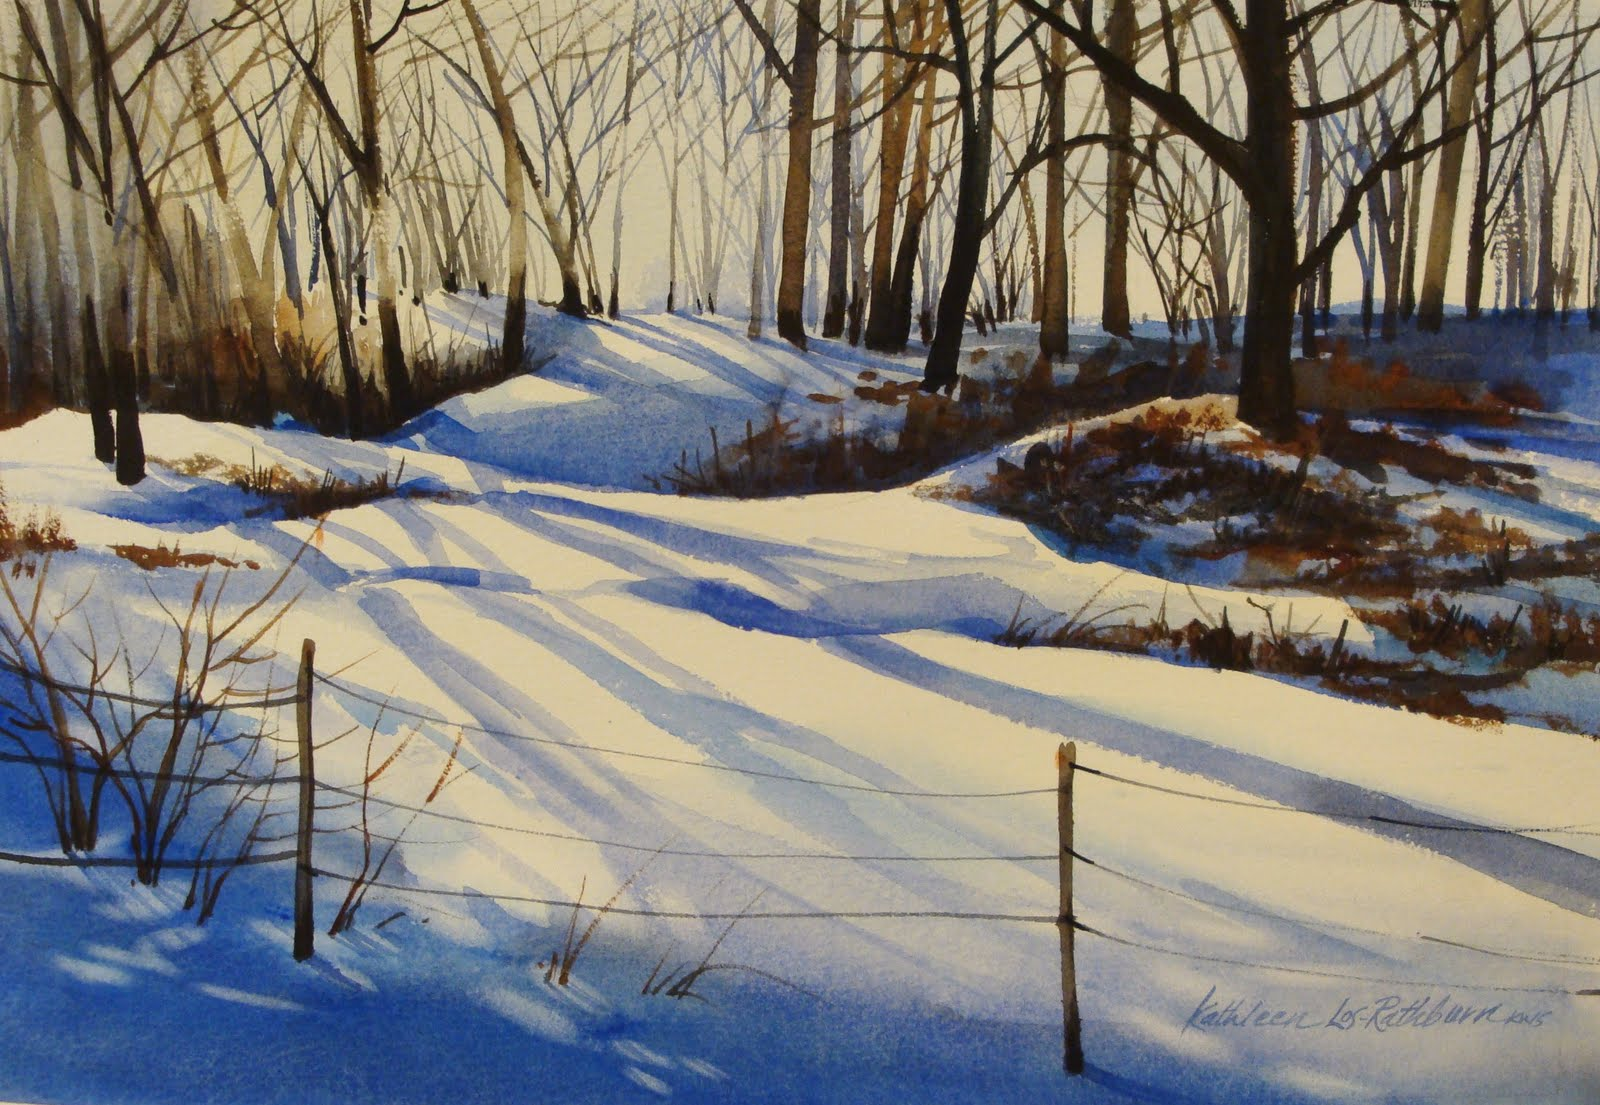 Kathy Los-Rathburn,: Winter in Indiana